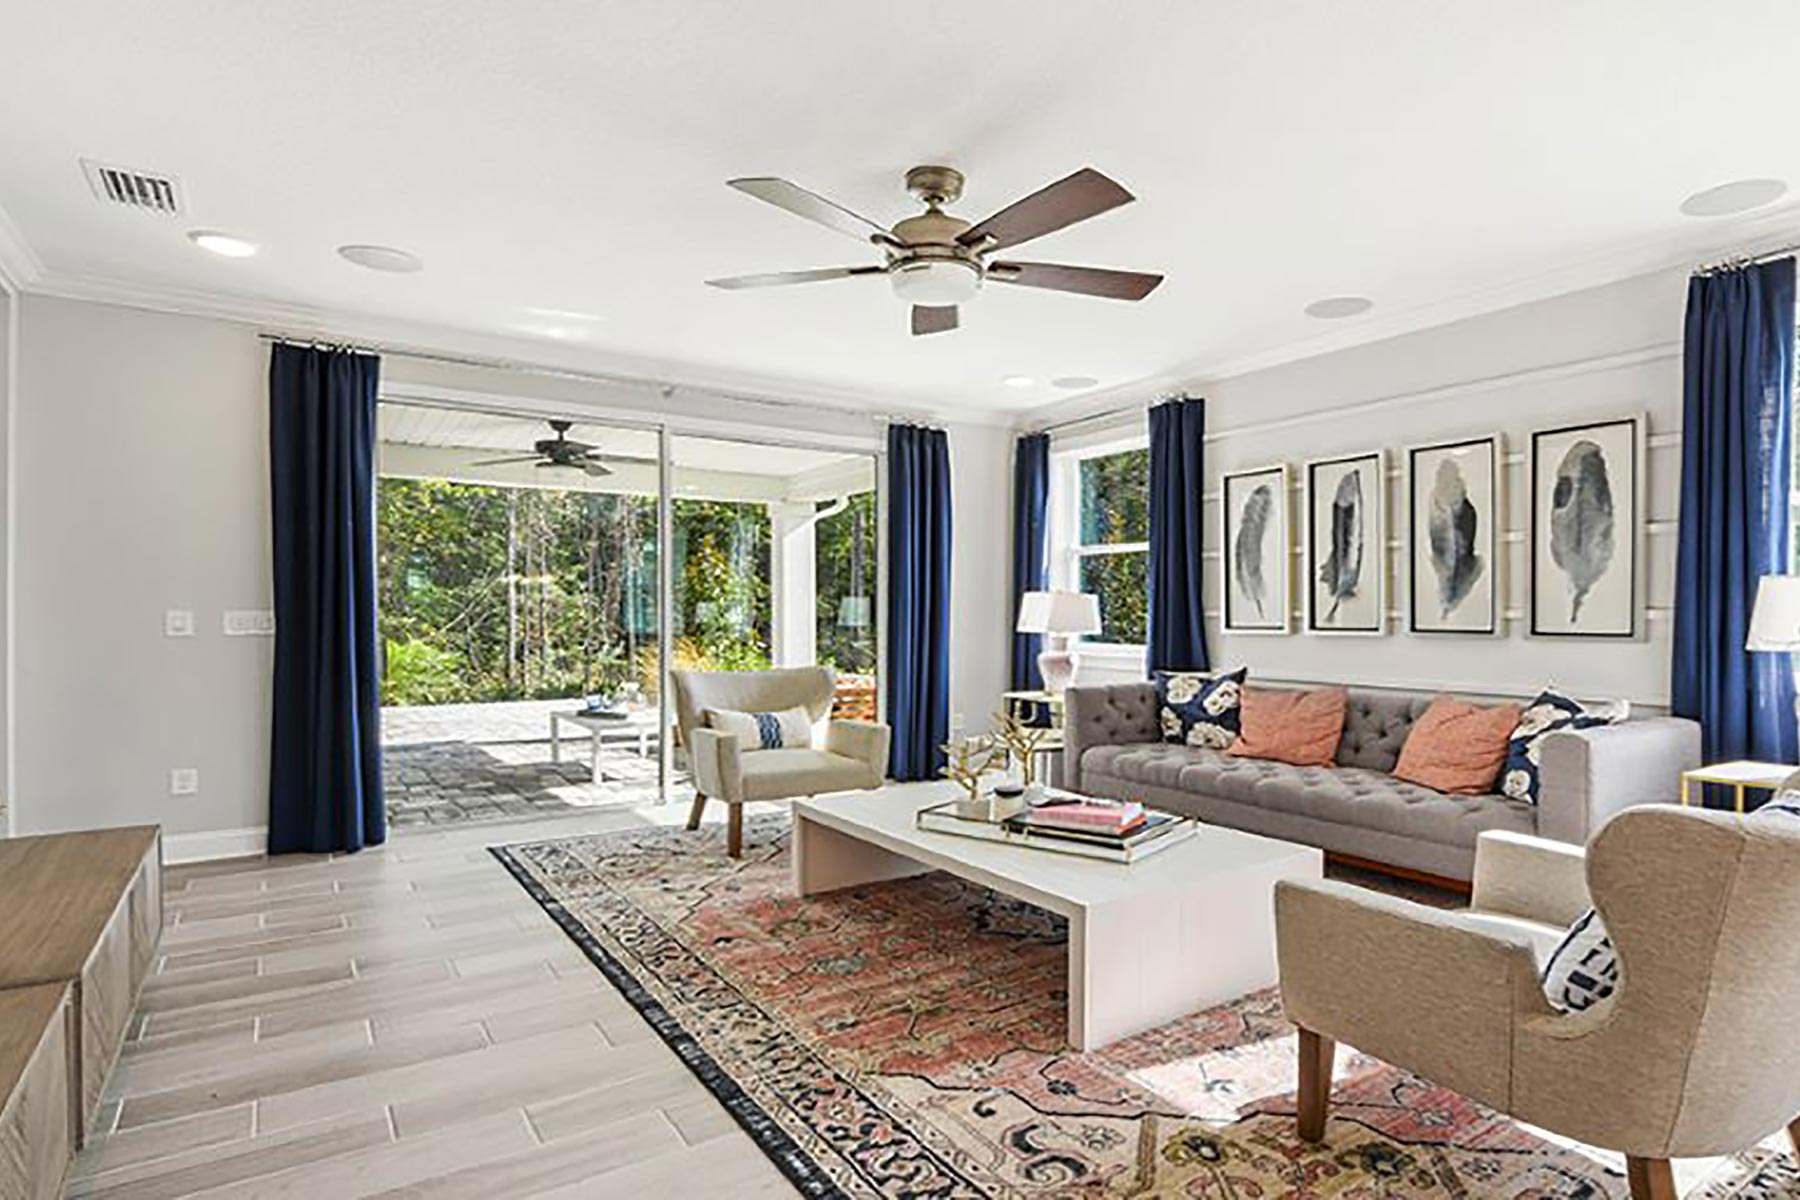 River Plan Greatroom at RiverTown - WaterSong in St. Johns Florida by Mattamy Homes